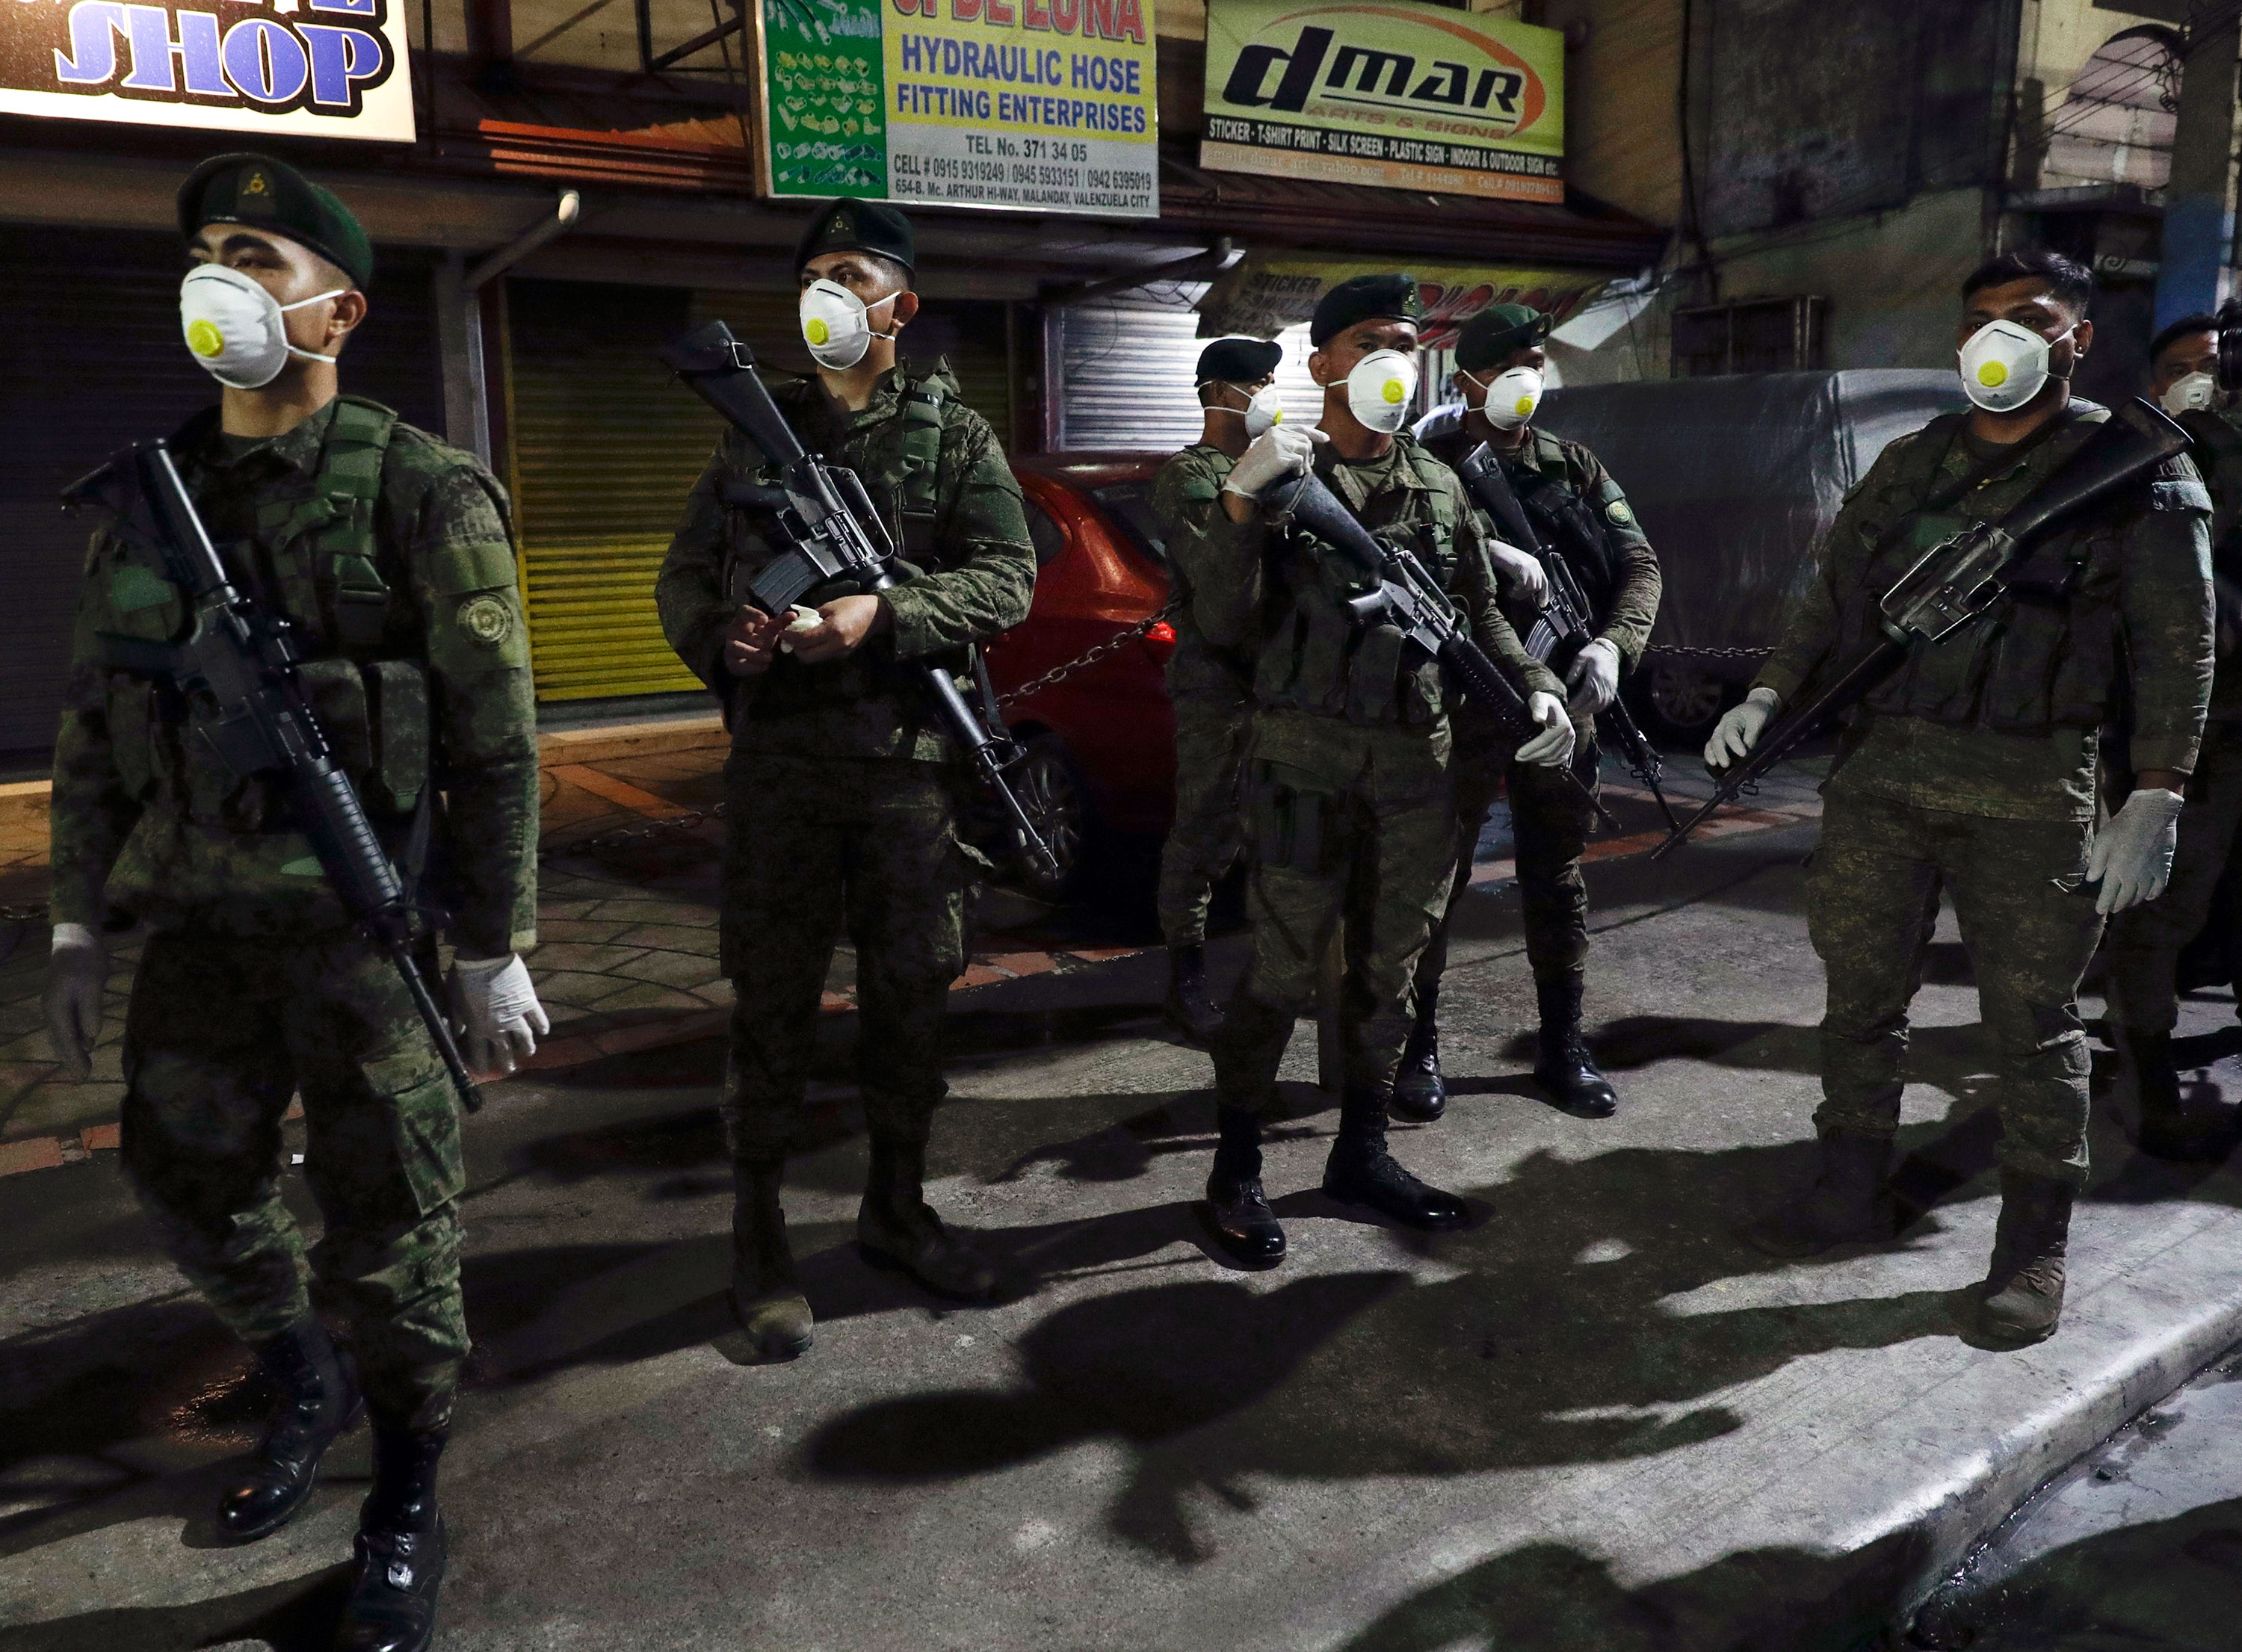 Filipino army troops arrive in metropolitan Manila, Philippines on March 15 to assist with the partial lockdown.